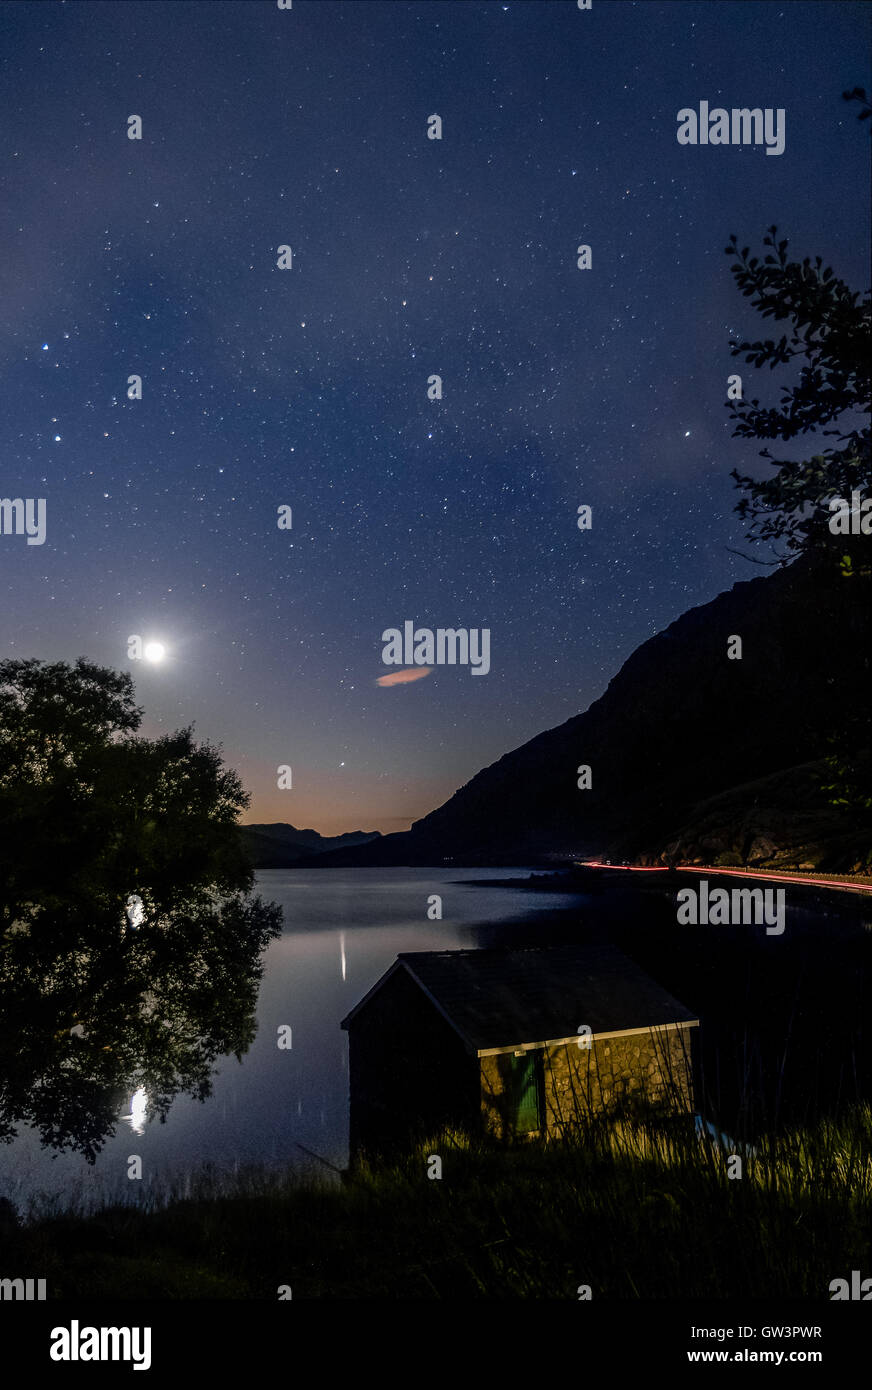 View of Llyn Ogwen Lake at night before sunrise with blu sky, moon and stars. House in the lake and tree. - Stock Image